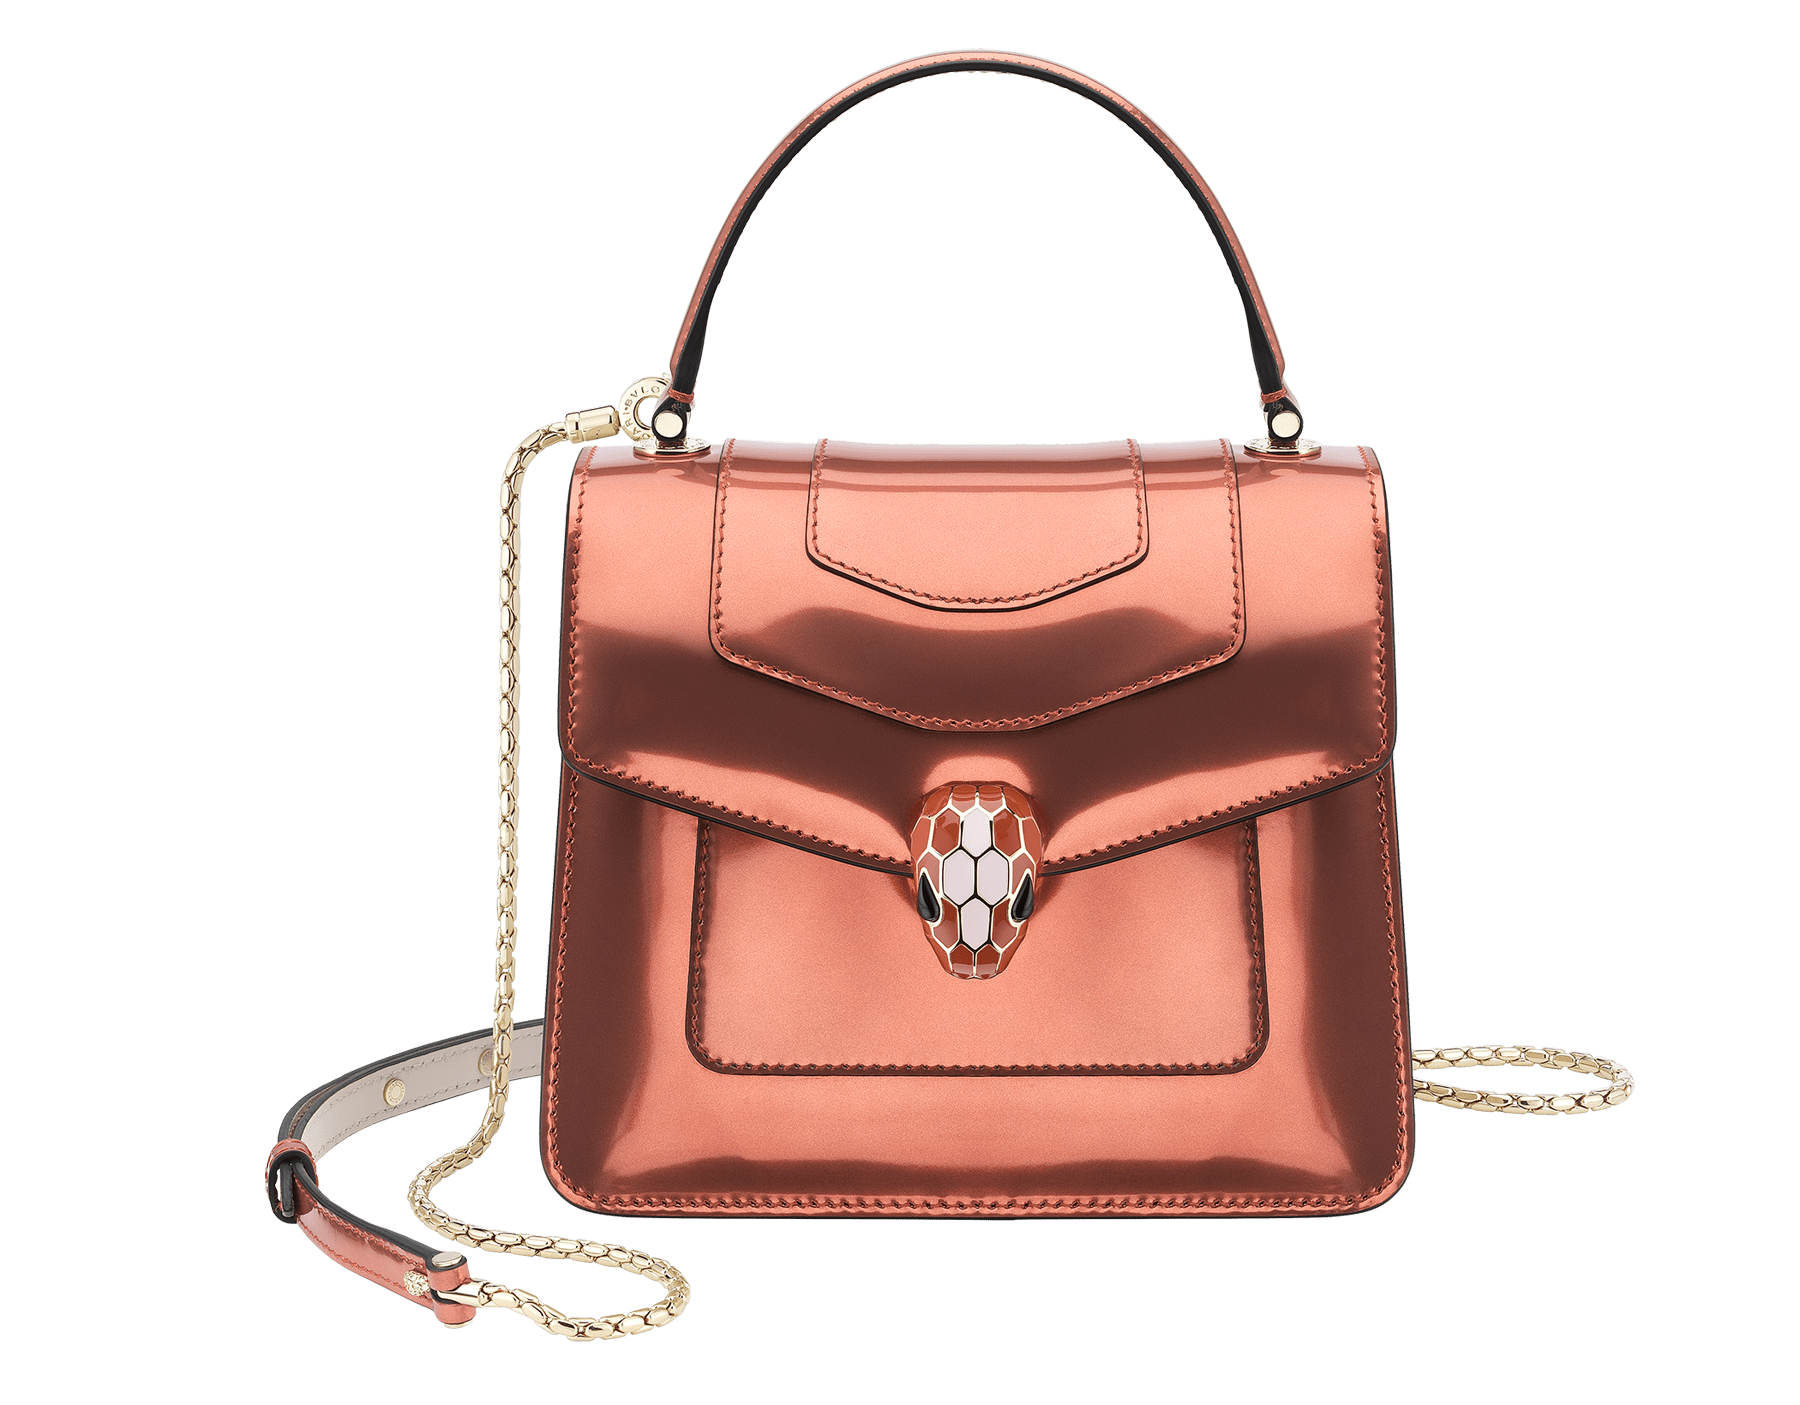 Serpenti Forever crossbody bag in imperial topaz brushed metallic calf leather with Roman garnet, rosa di francia and white agate calf leather sides. Iconic snakehead closure in light gold plated brass embellished with imperial topaz and white enamel and black onyx eyes. 752-NBMCL image 1